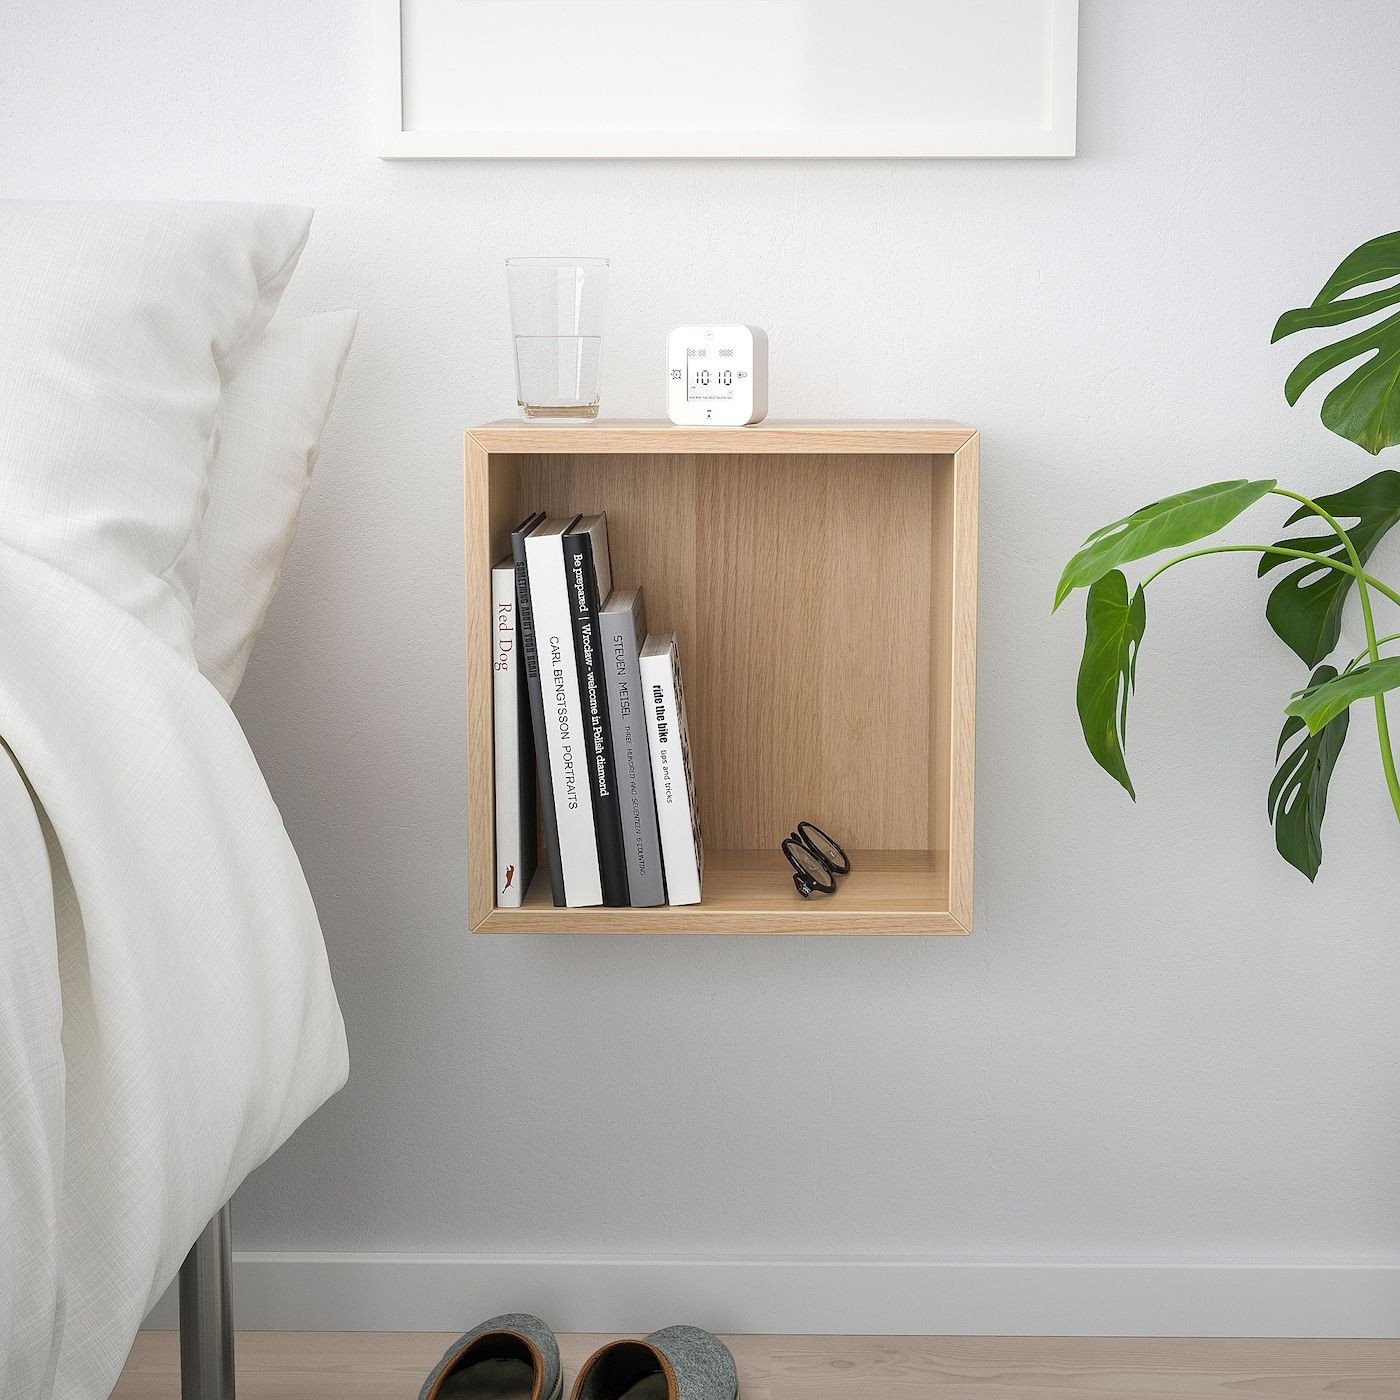 Wall Shelf for Bedroom Awesome Ikea Eket White Stained Oak Effect Wall Mounted Shelving